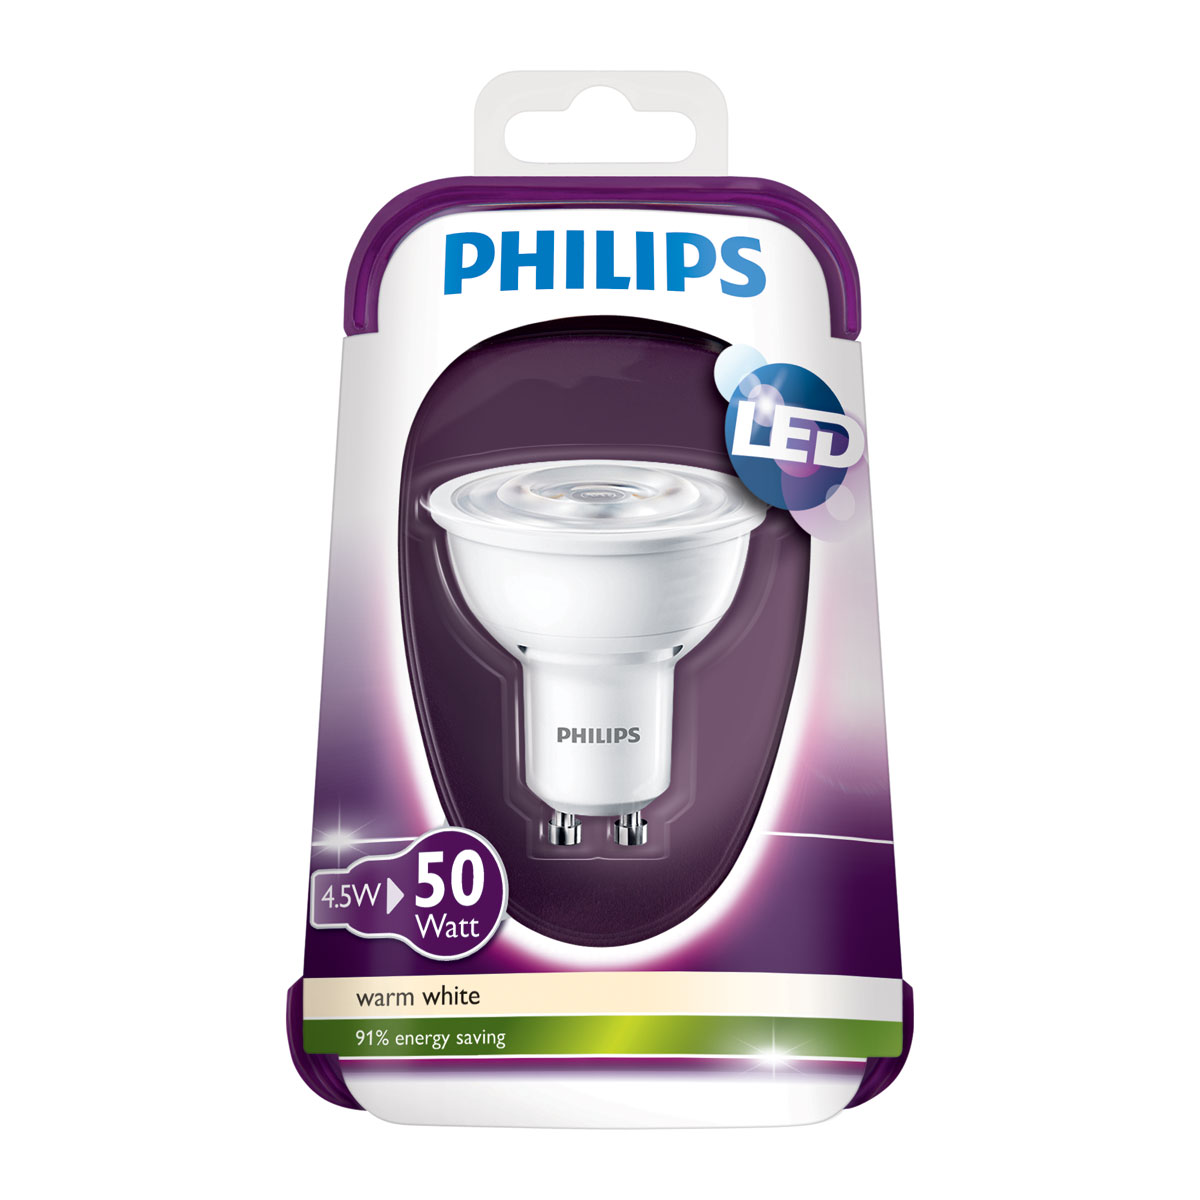 philips led bulb gu10 philips gu10 led bulb guide gu10. Black Bedroom Furniture Sets. Home Design Ideas